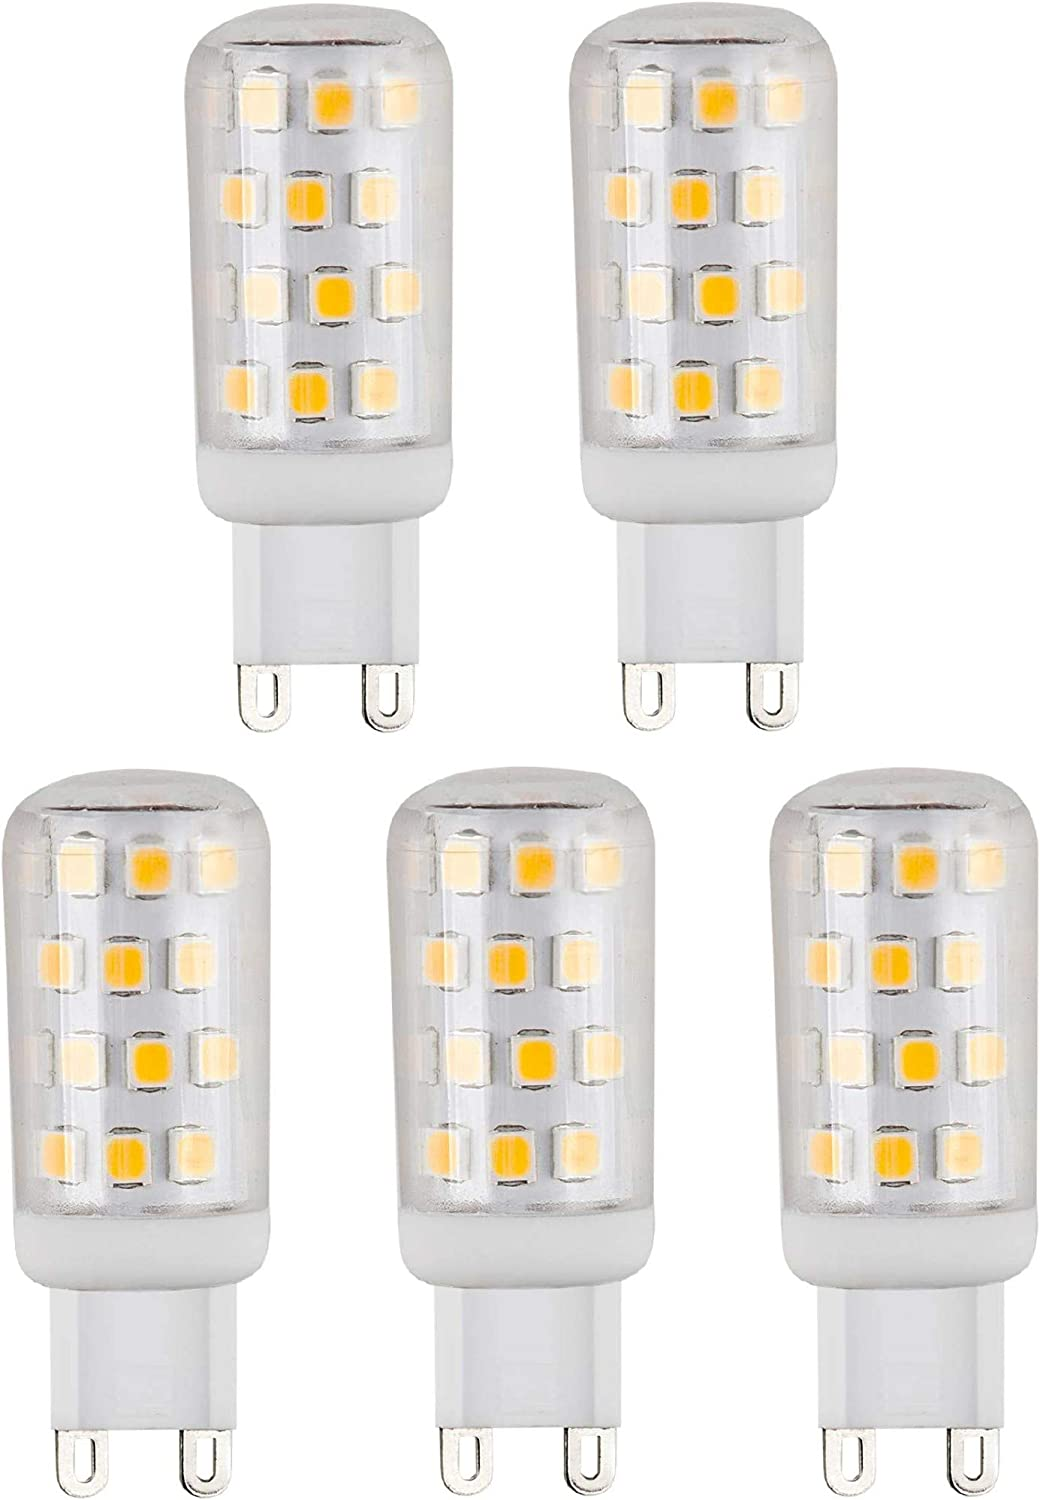 G9 33W = 40W ECO Halogen LED Bulbs Clear Capsule Lamps Dimmable 240v Energizer